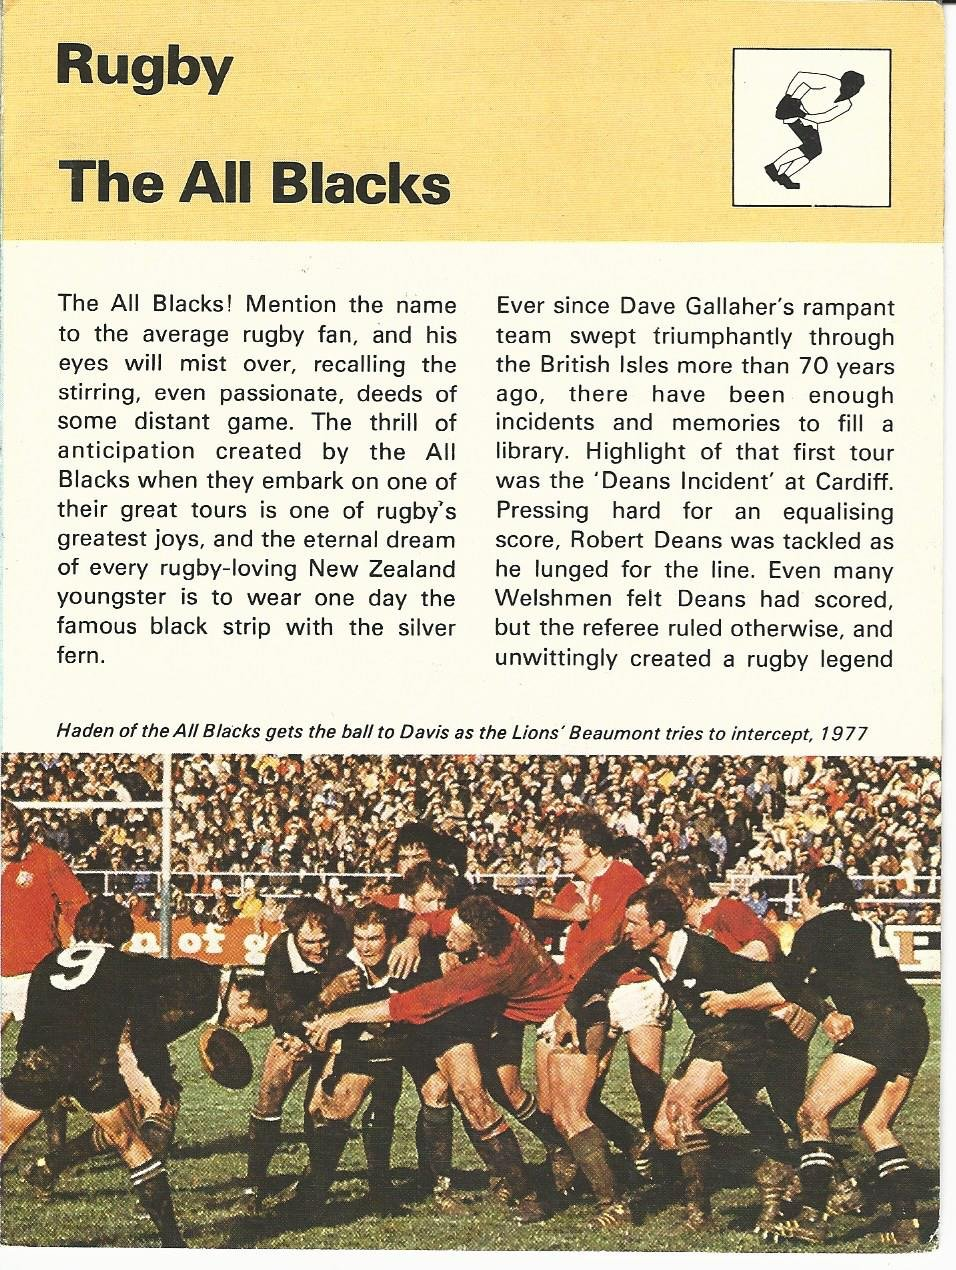 1977-79 Sportscaster Card, 992.101 Rugby, The All Blacks